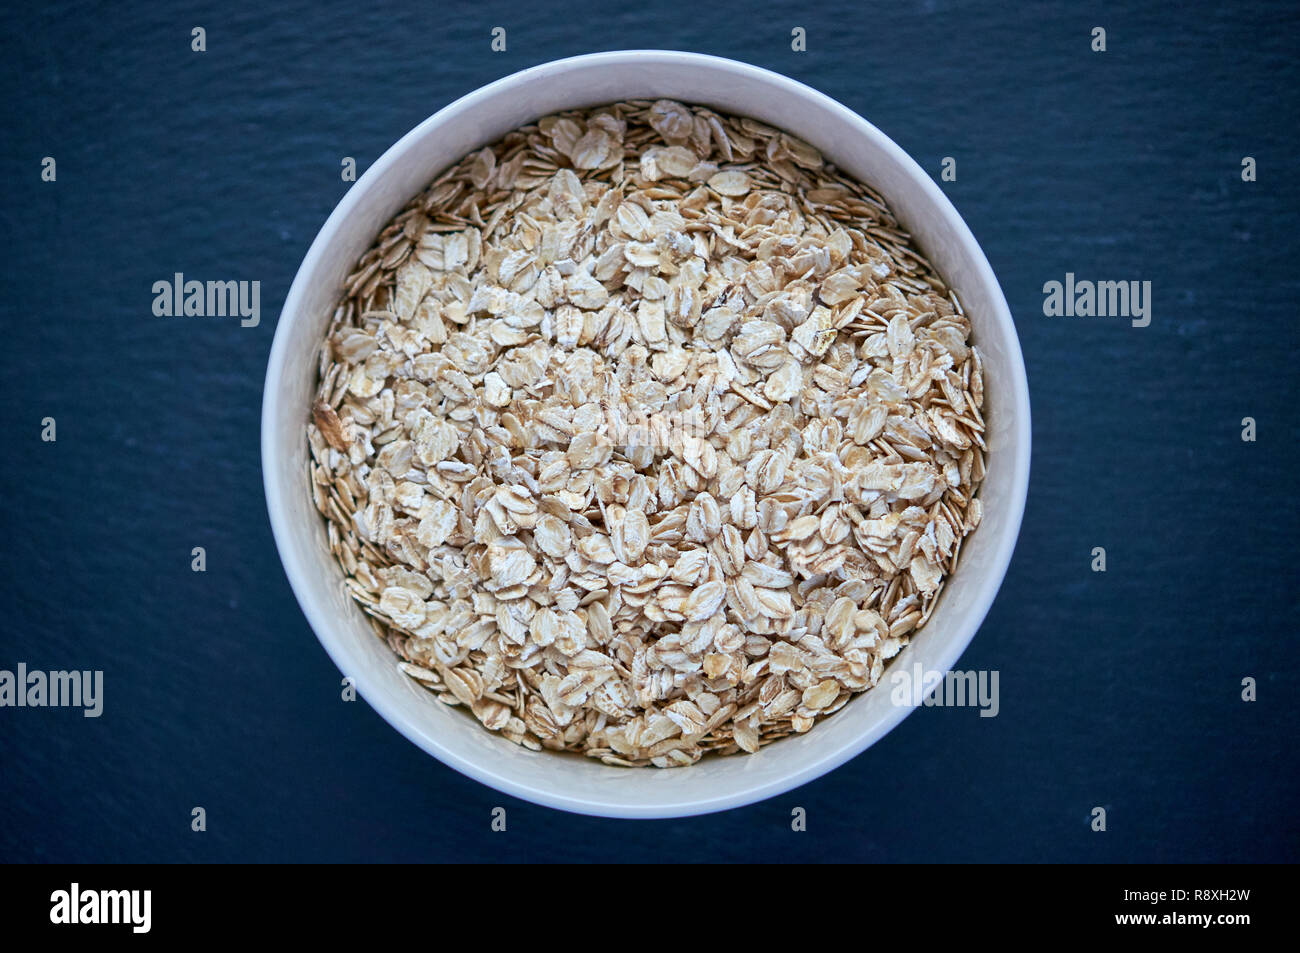 Dry rolled oatmeal in bowl isolated on dark background. Scattered oat flakes. Stock Photo